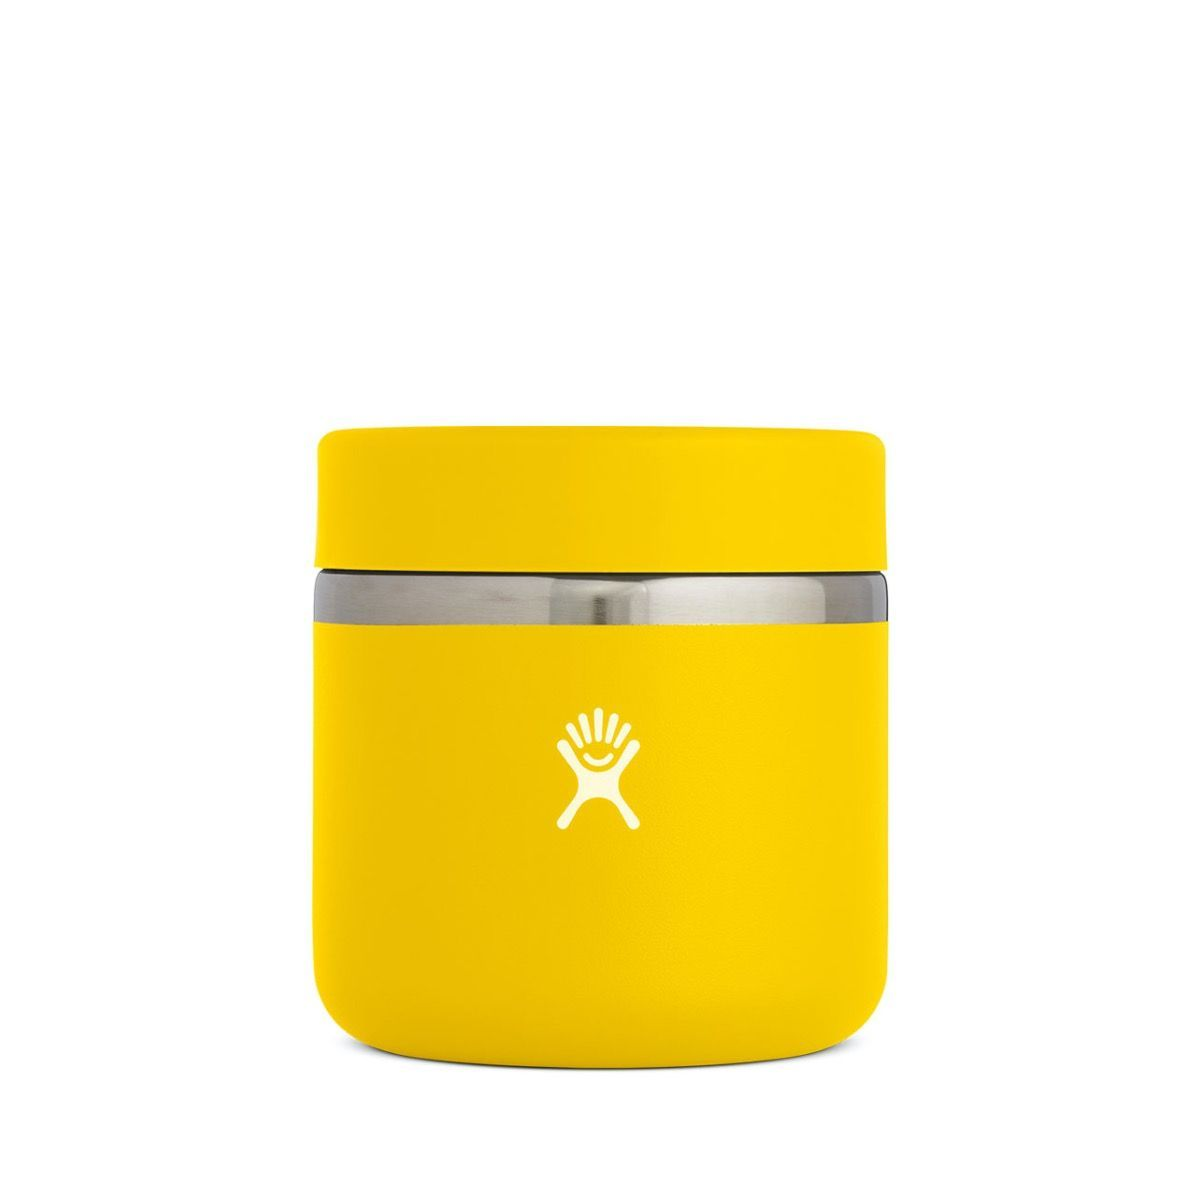 Hydroflask 20 oz insulated food jar sunflower